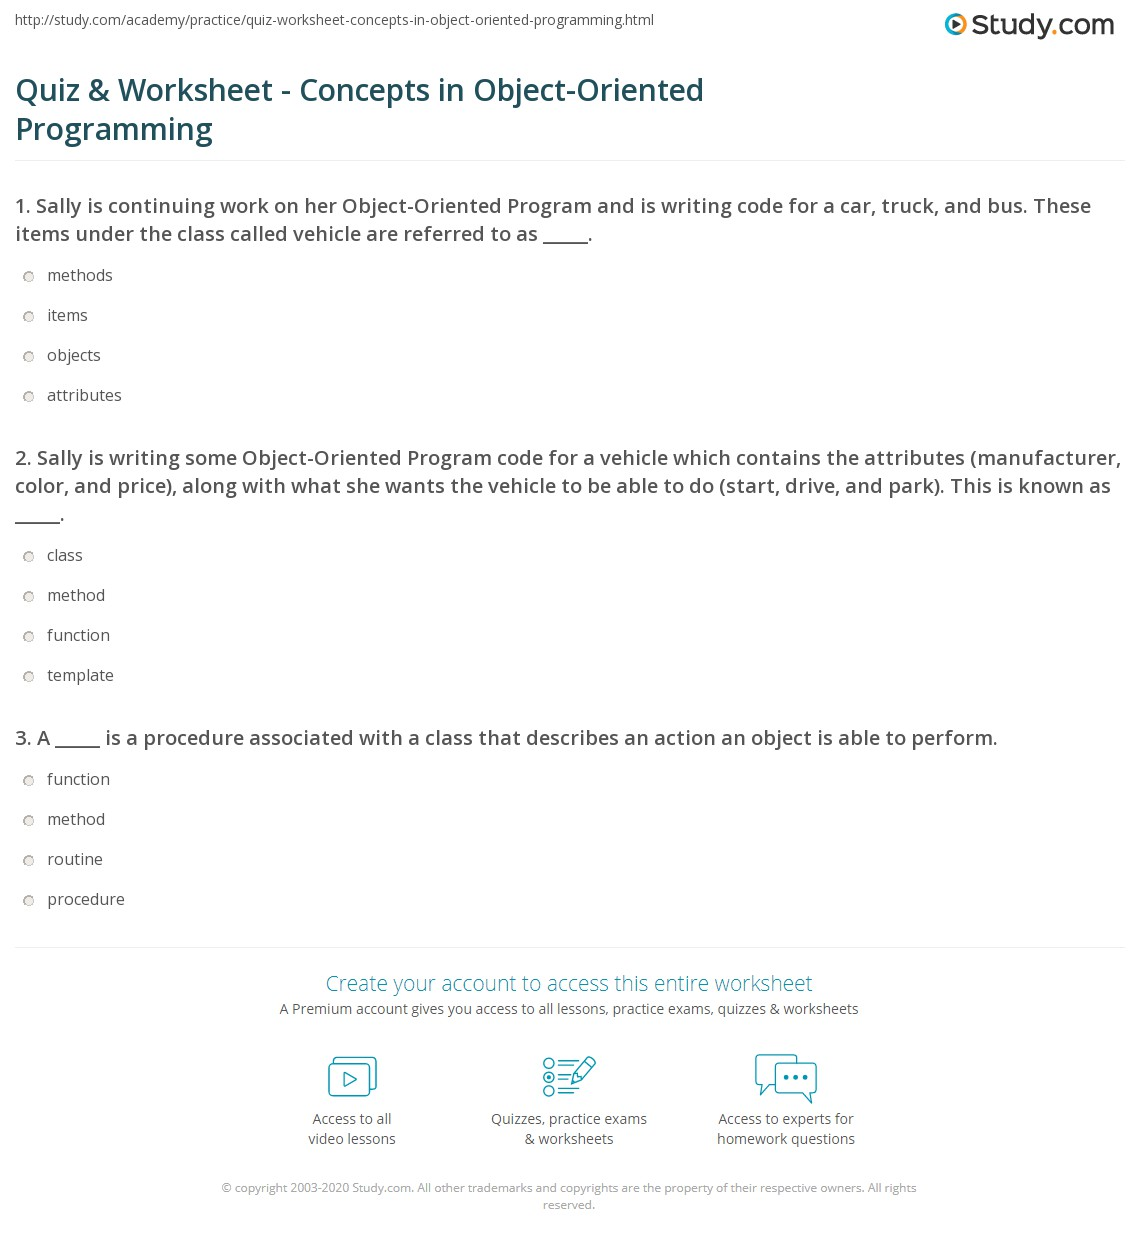 Quiz & Worksheet - Concepts in Object-Oriented Programming